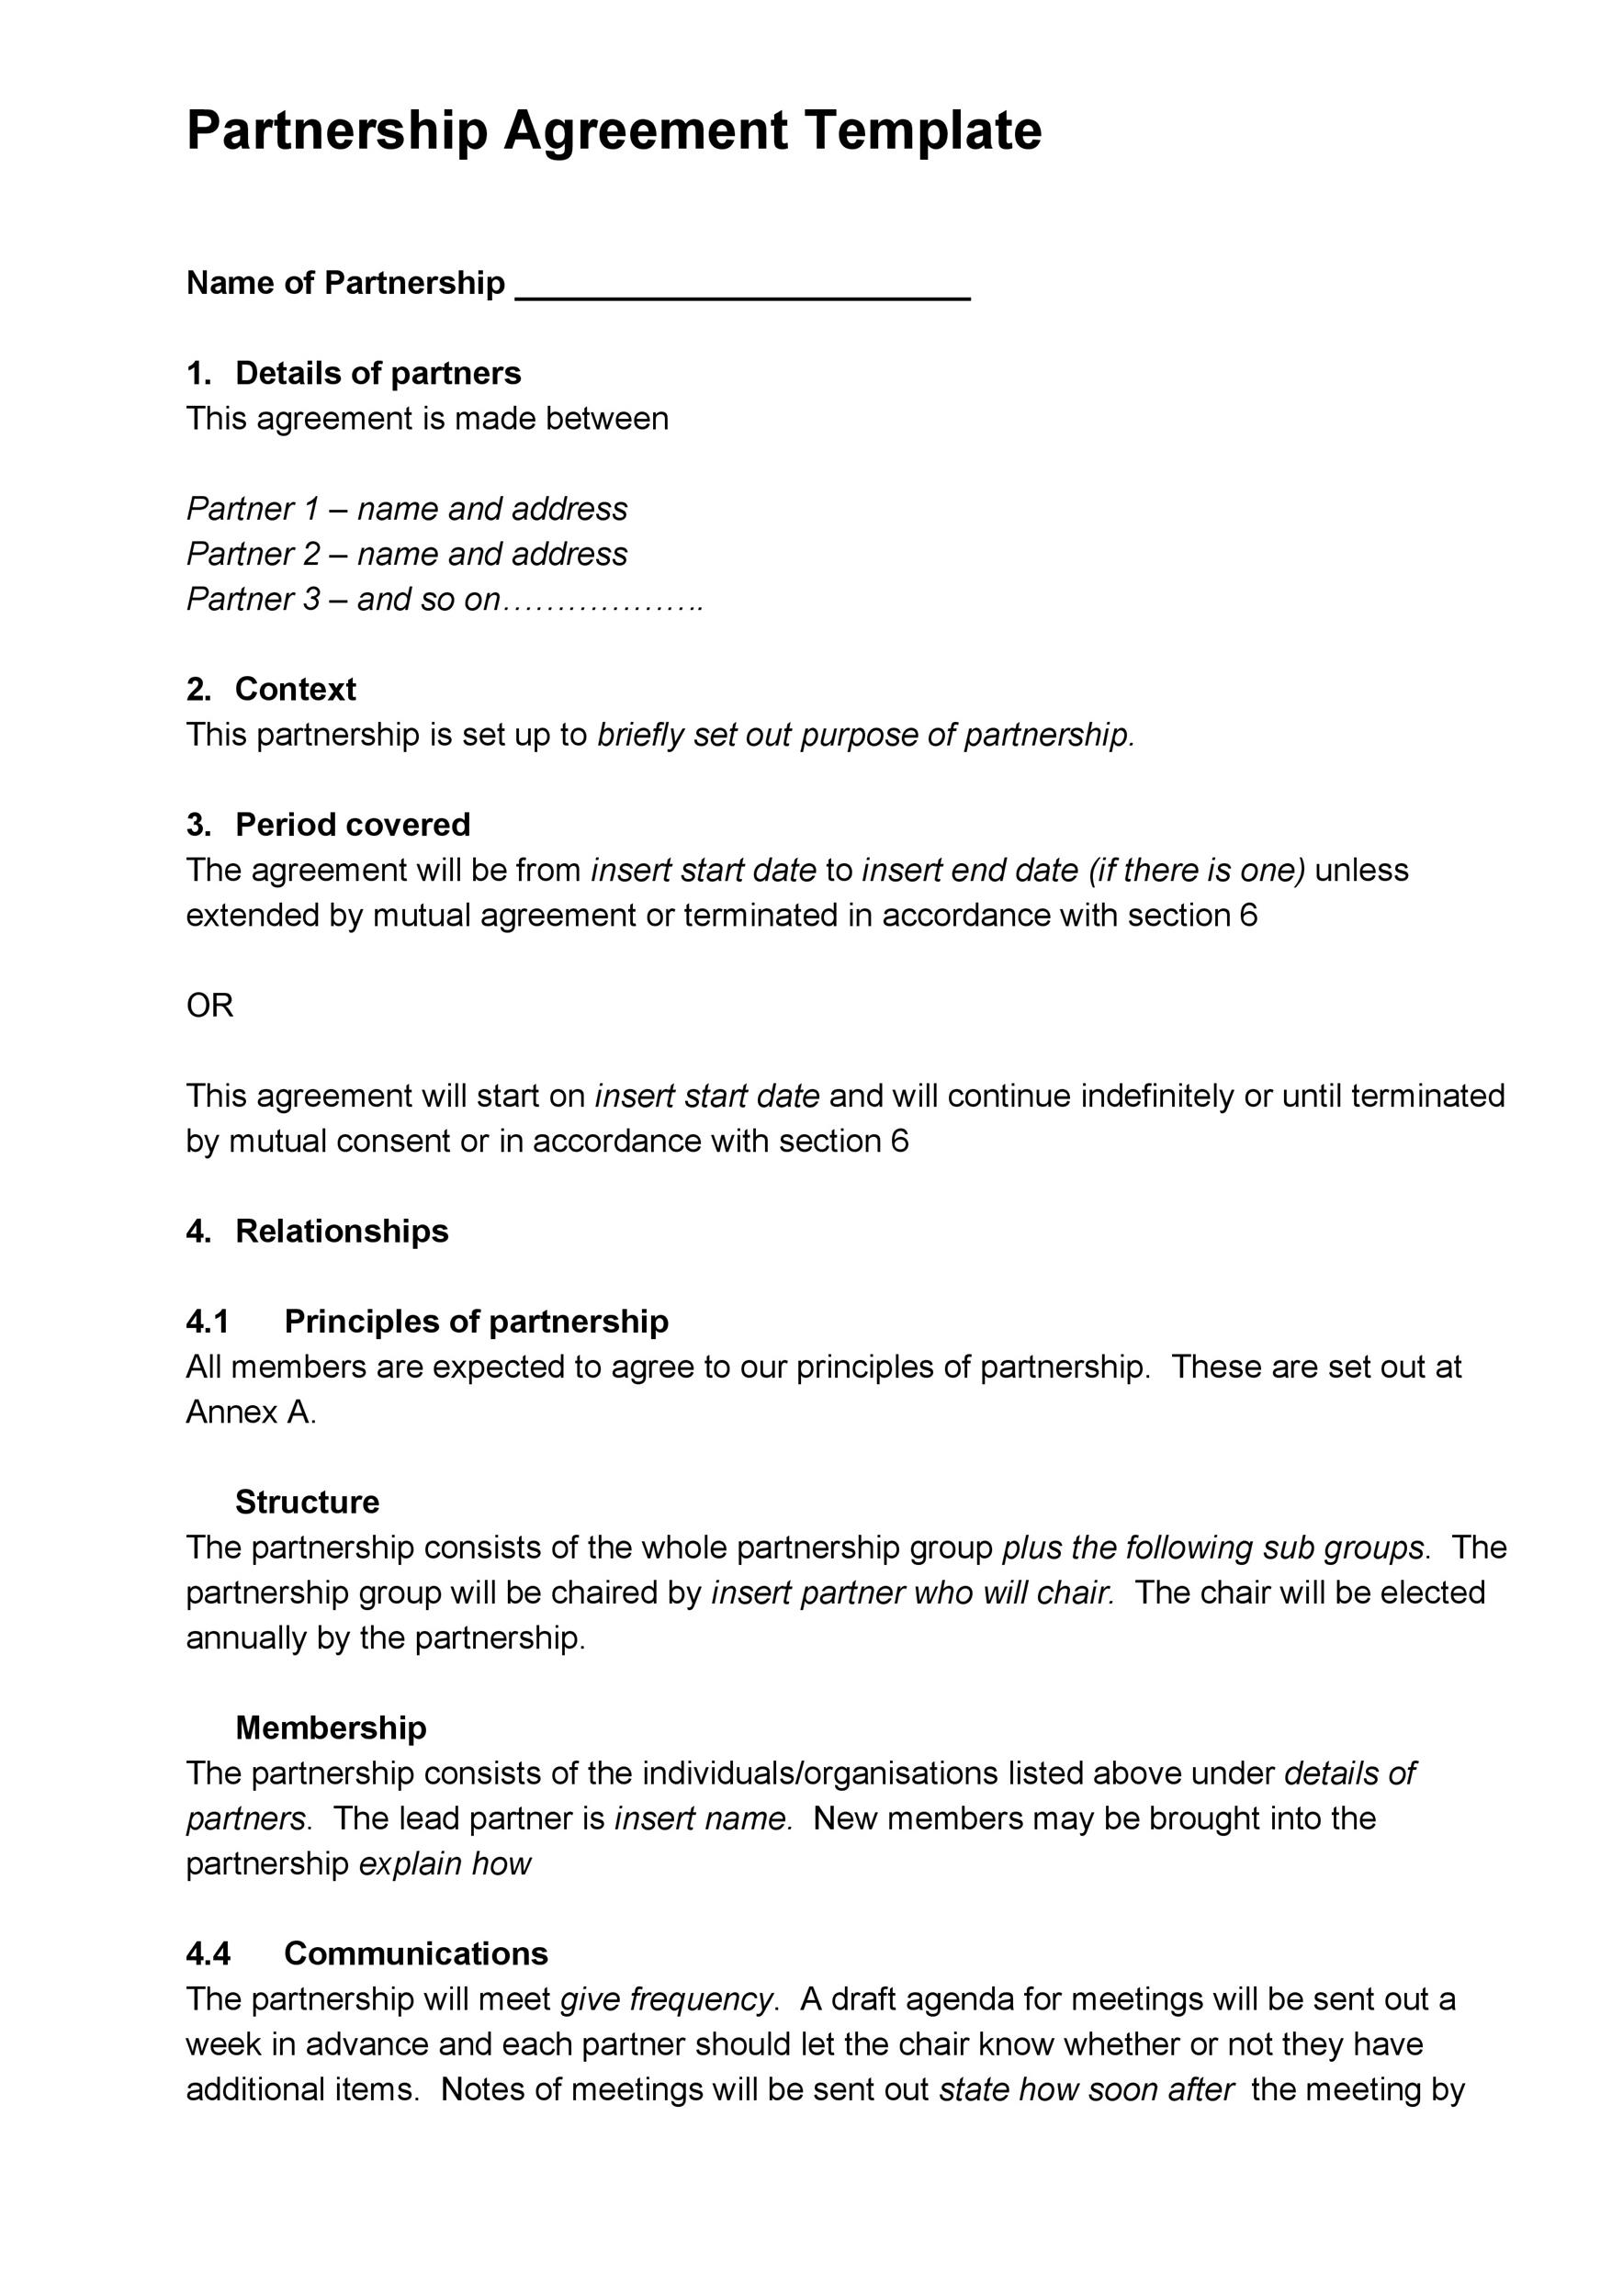 40+ FREE Partnership Agreement Templates (Business, General) - mutual agreement contract sample